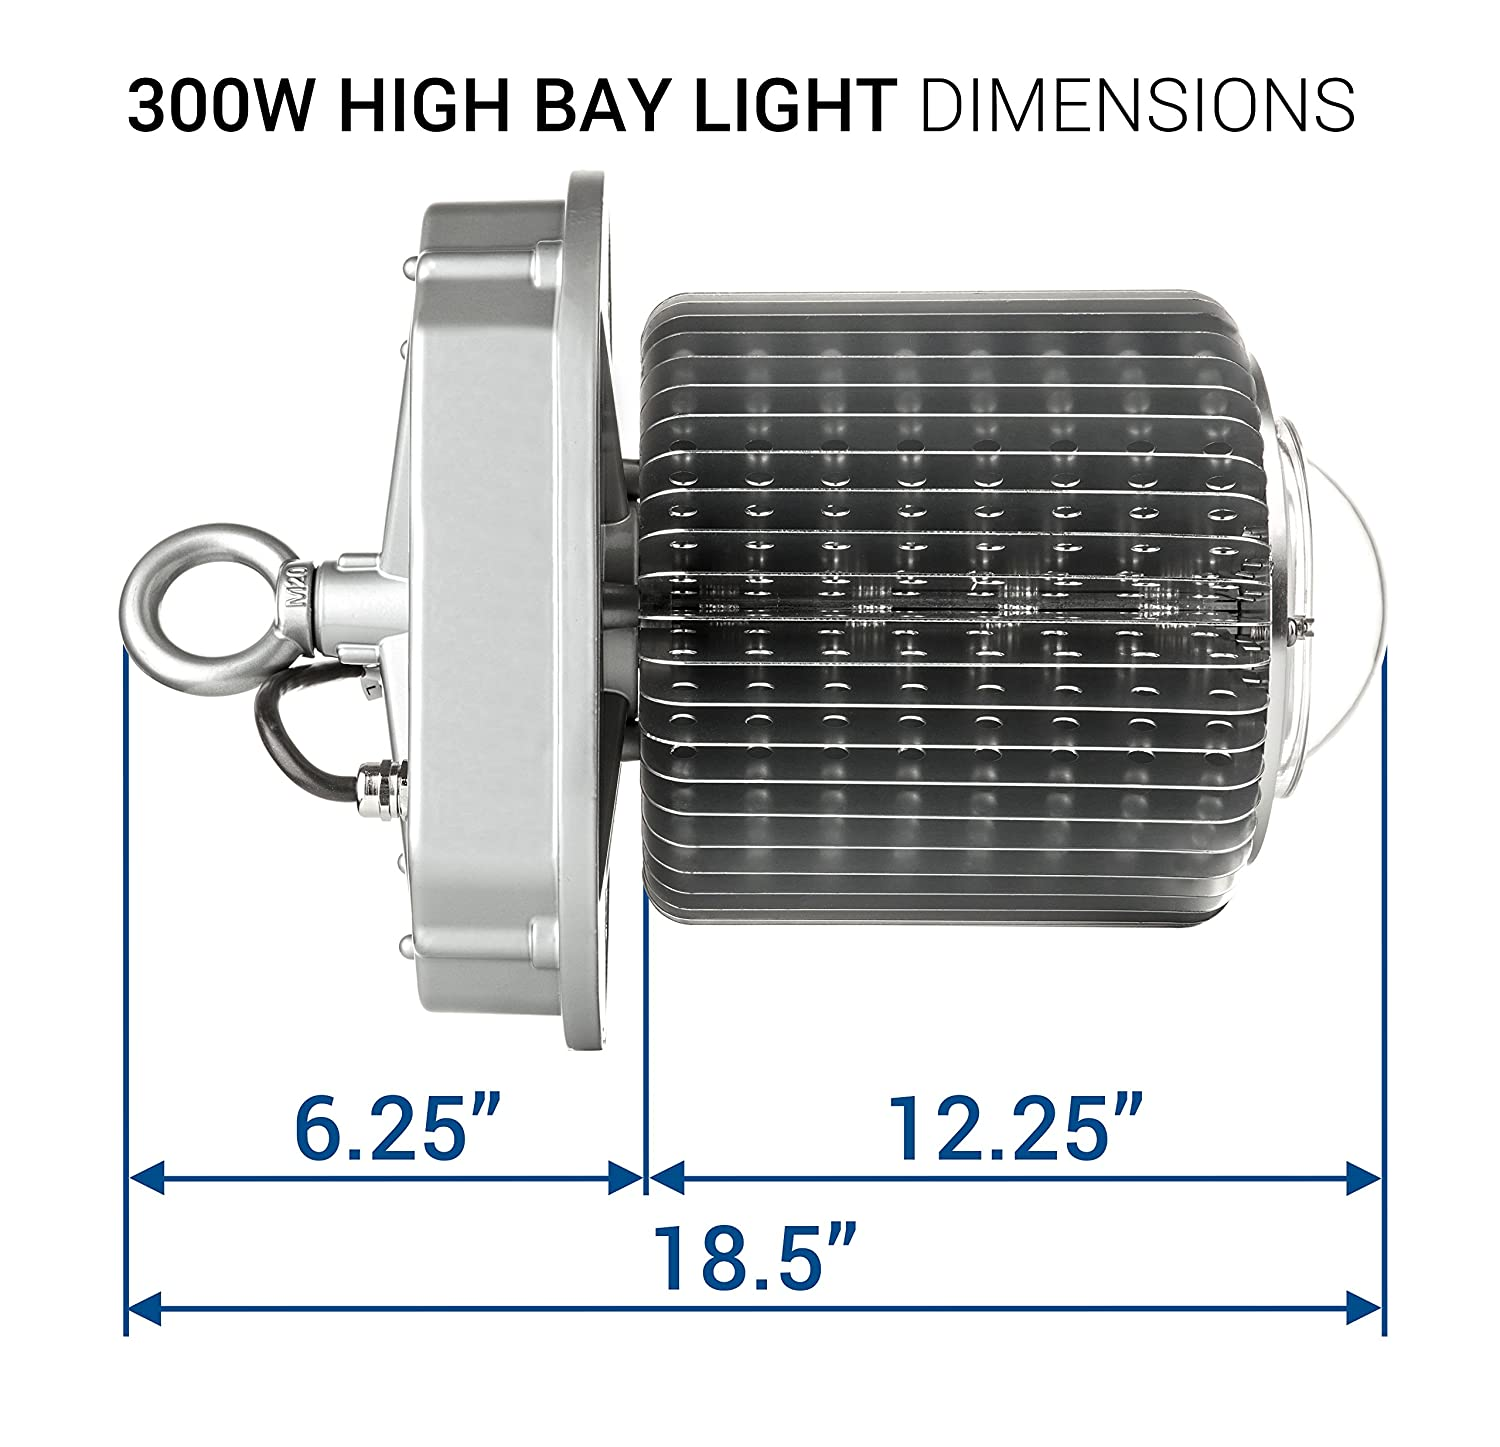 Hyperikon Led High Bay Light 300w 800w Hid Hps Equivalent 32 Wiring Diagram 700 Lumens 5000k Crystal White Glow Indoor Area Lighting Free Reflector Upon Request